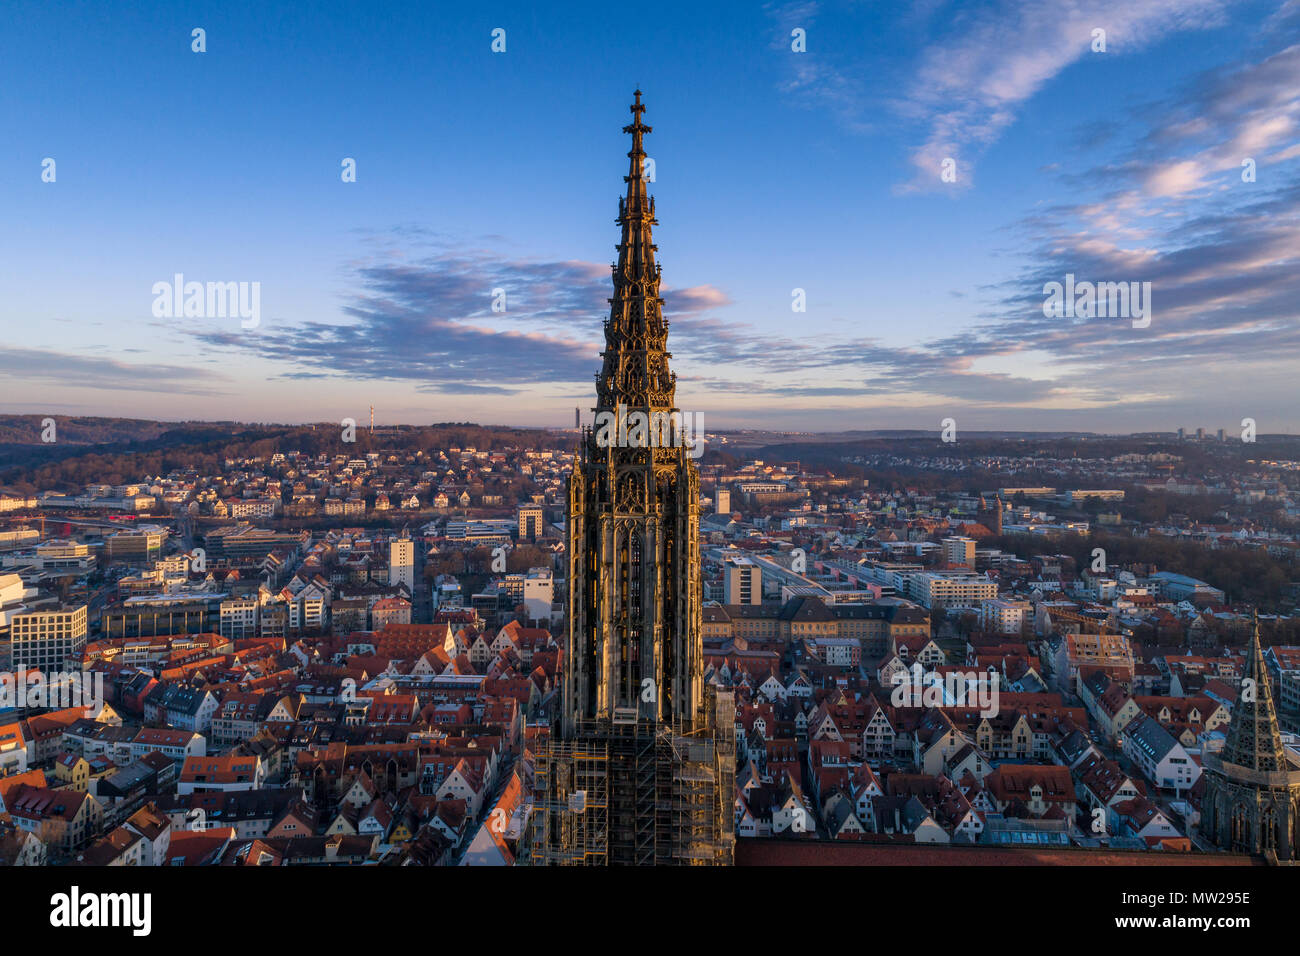 Ulm, Germany - March 11, 2017: Aerial shot taken with a drone of Ulm Minster at sunrise Stock Photo